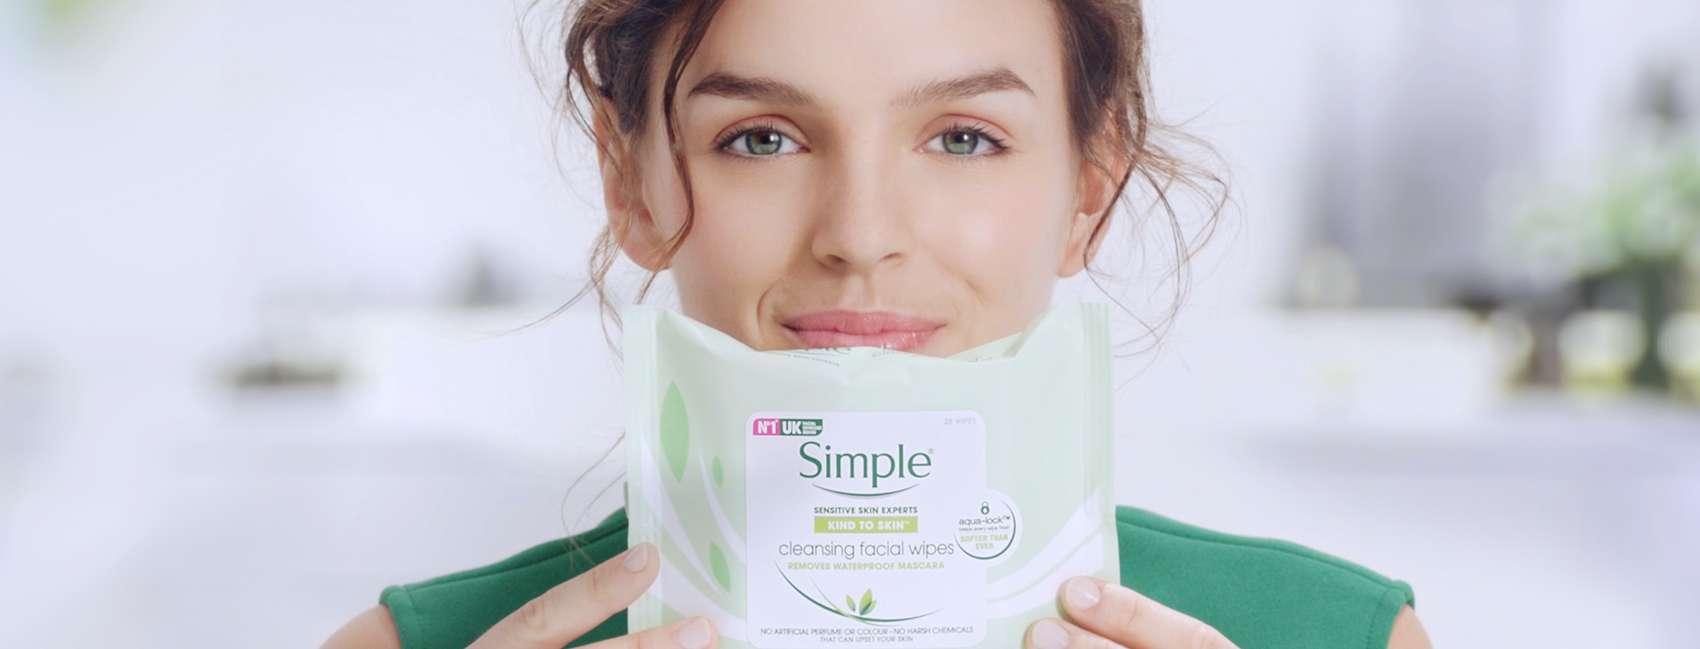 7 savvy skincare tips to try today girl holding wipes BANNER